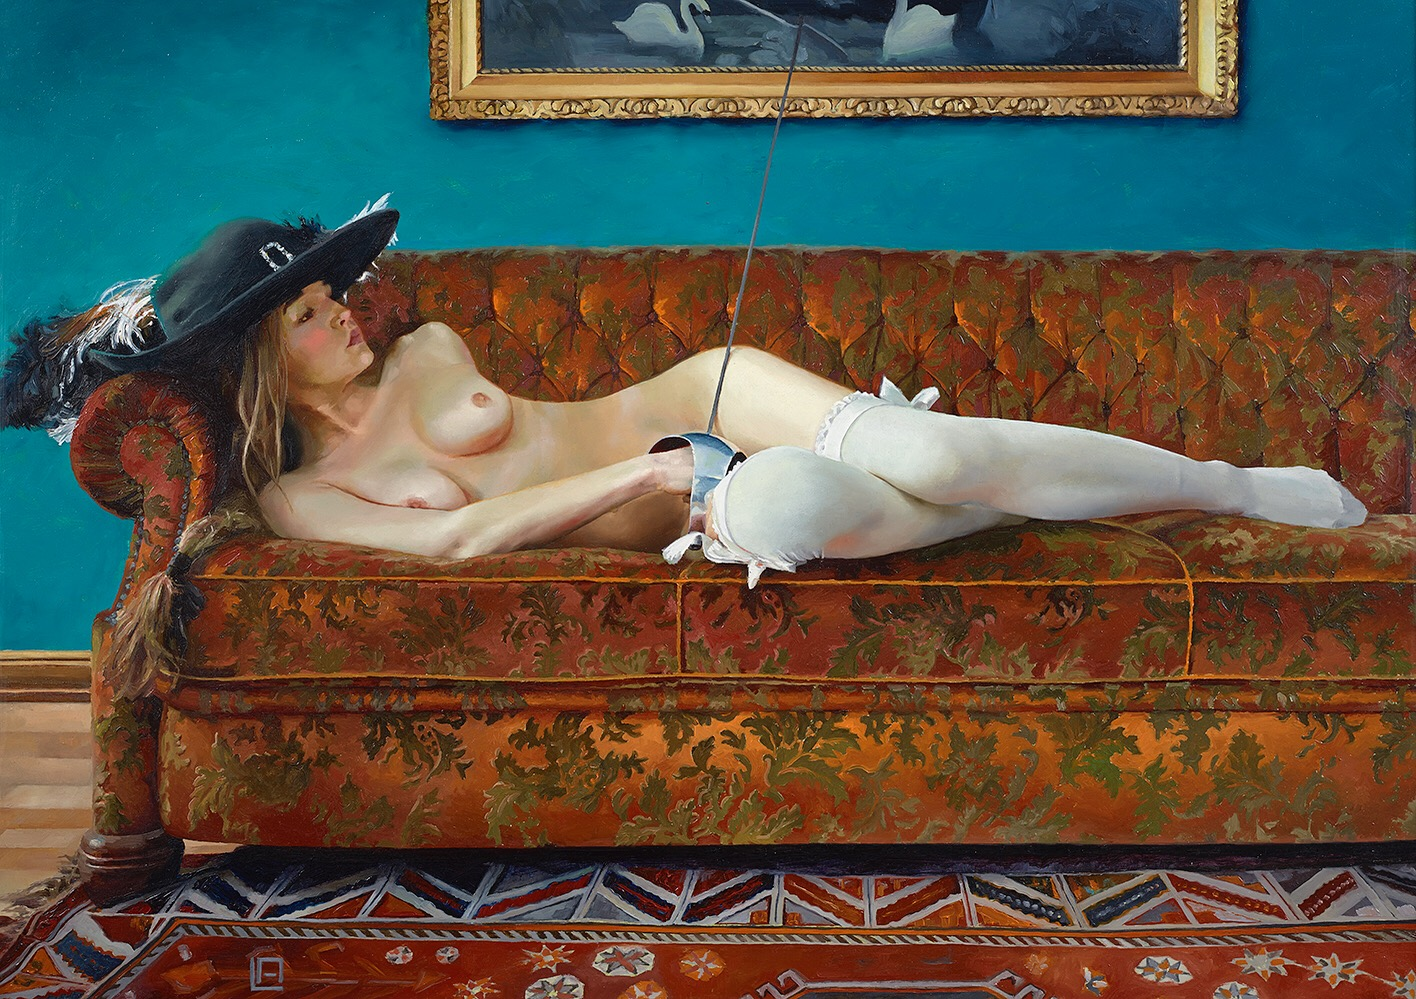 La Maupin, 27.5 x 19.7 inches, oil on panel  Sold